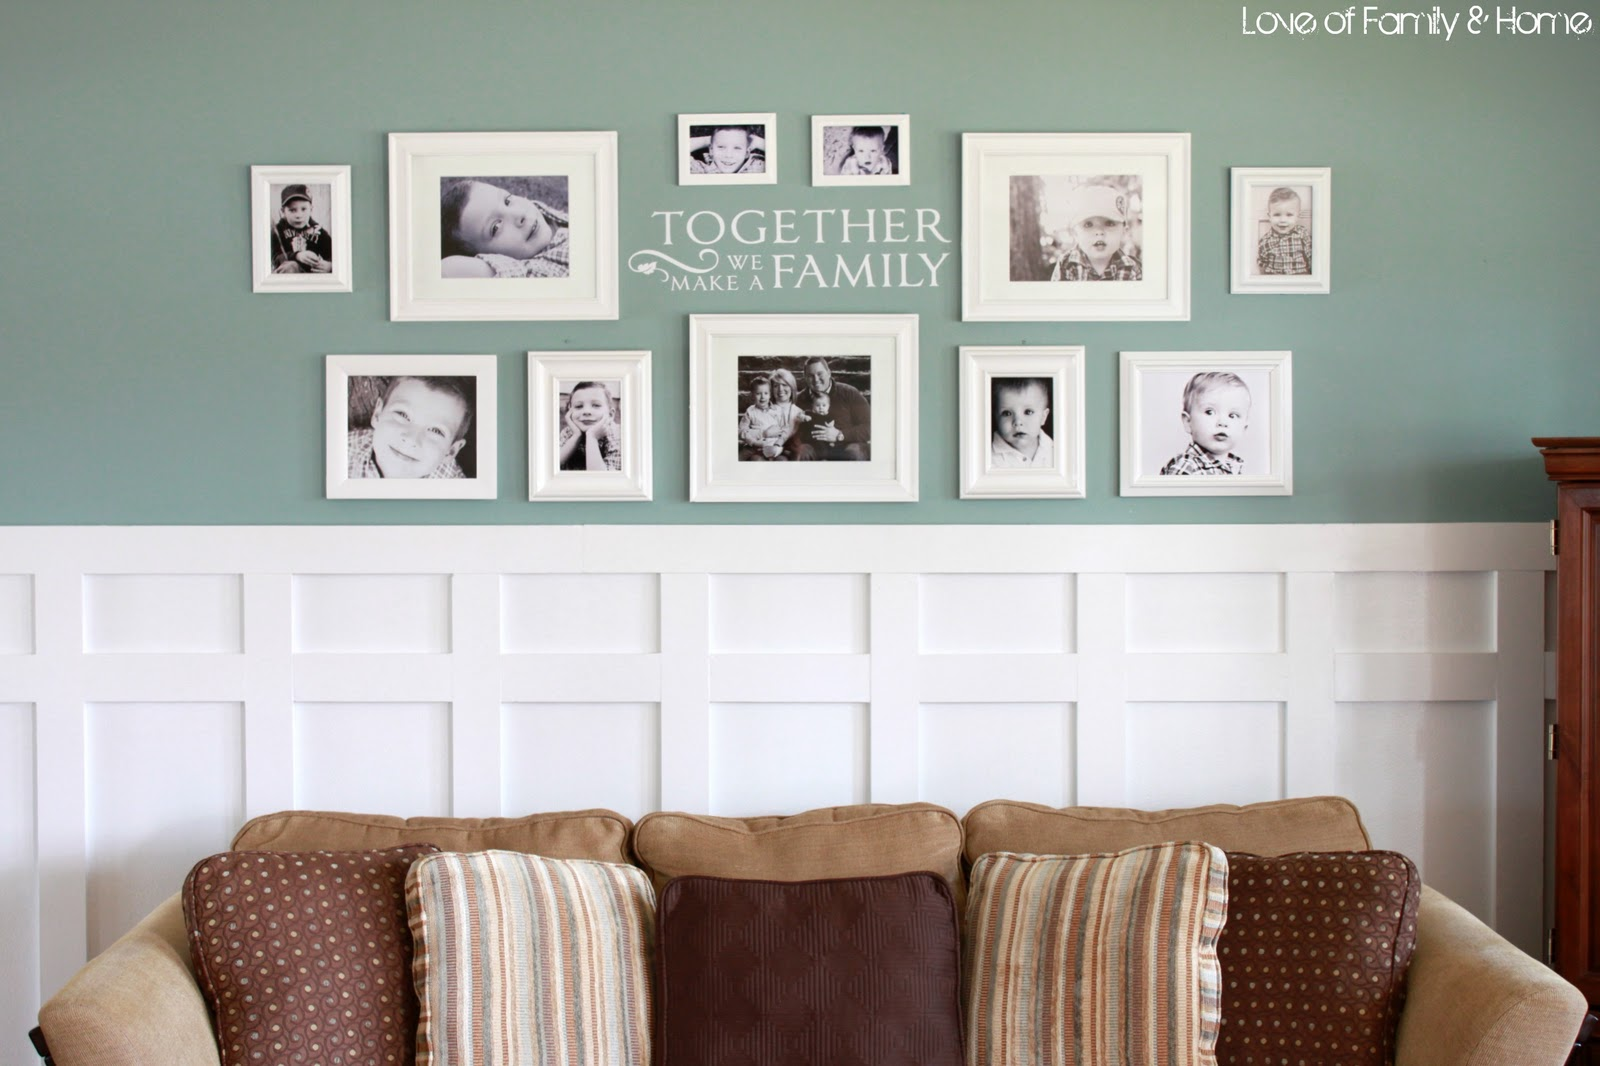 Board Batten Gallery Wall In The Living Room Love Of Family Home